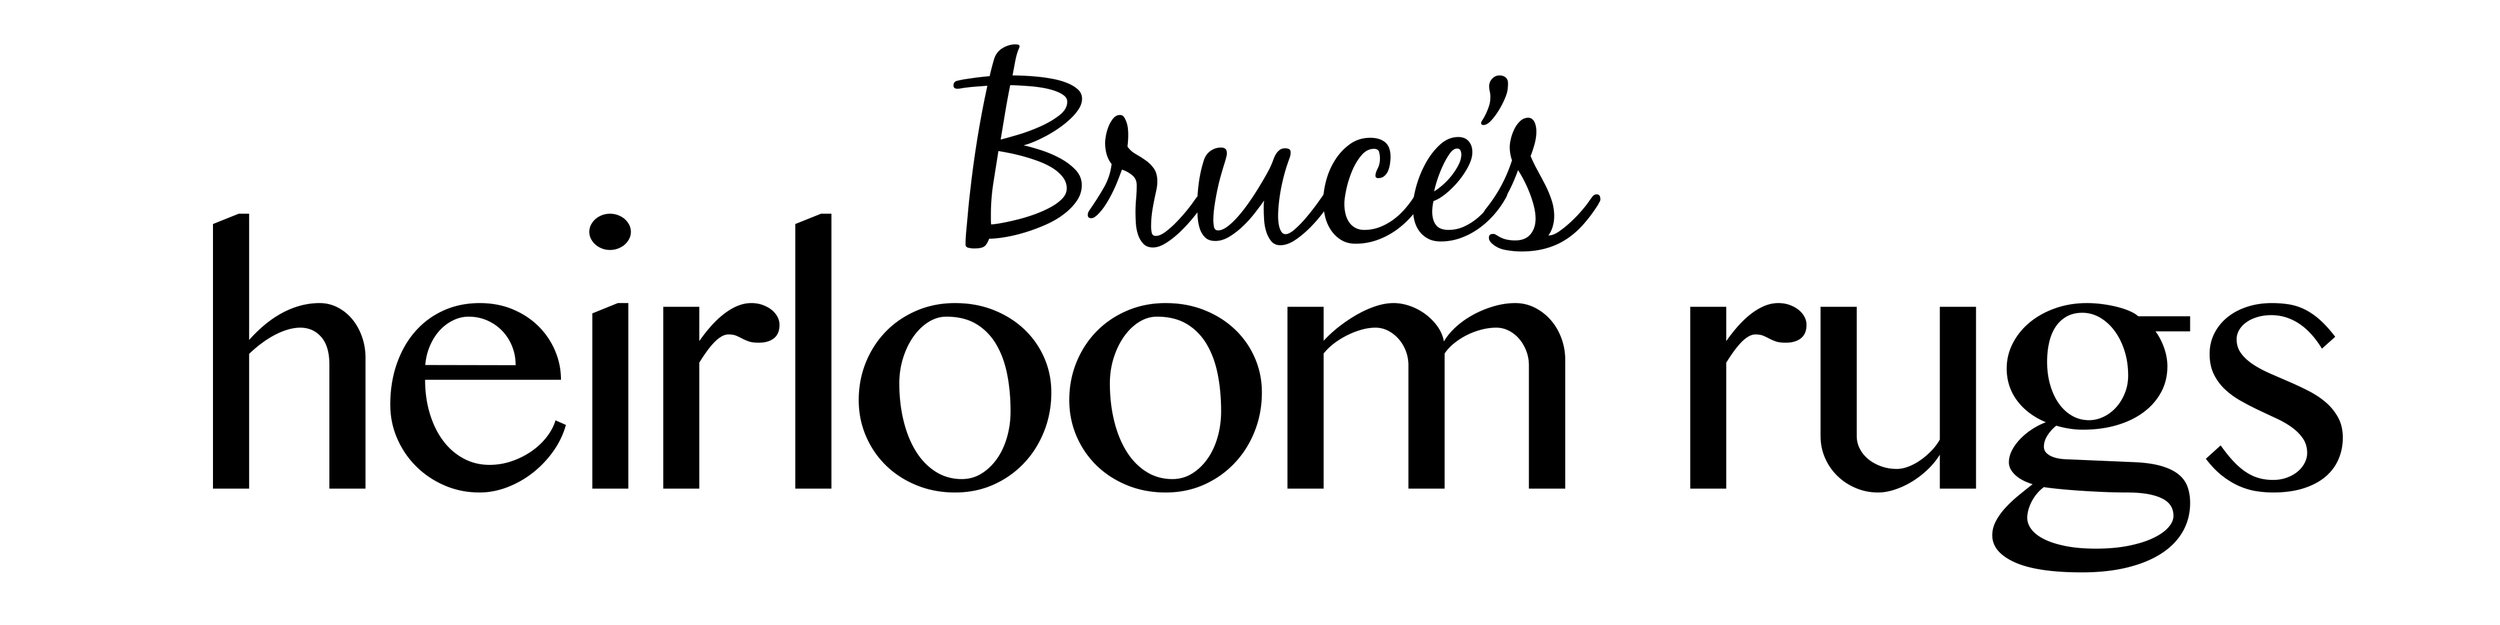 Handcrafted in  NEWBURGH, INDIANA, Bruce Blunk makes each rug, coaster, and hotpad on vintage looms. As a 5th generation weaver, Bruce has honed his craft. He makes each piece out of recycled materials from companies like Pendleton Wool and other various textile companies.  Rugs can be washed,but should be air dried.custom orders are welcome  812.305.5064 •BRUCEBLUNK@GMAIL.COM